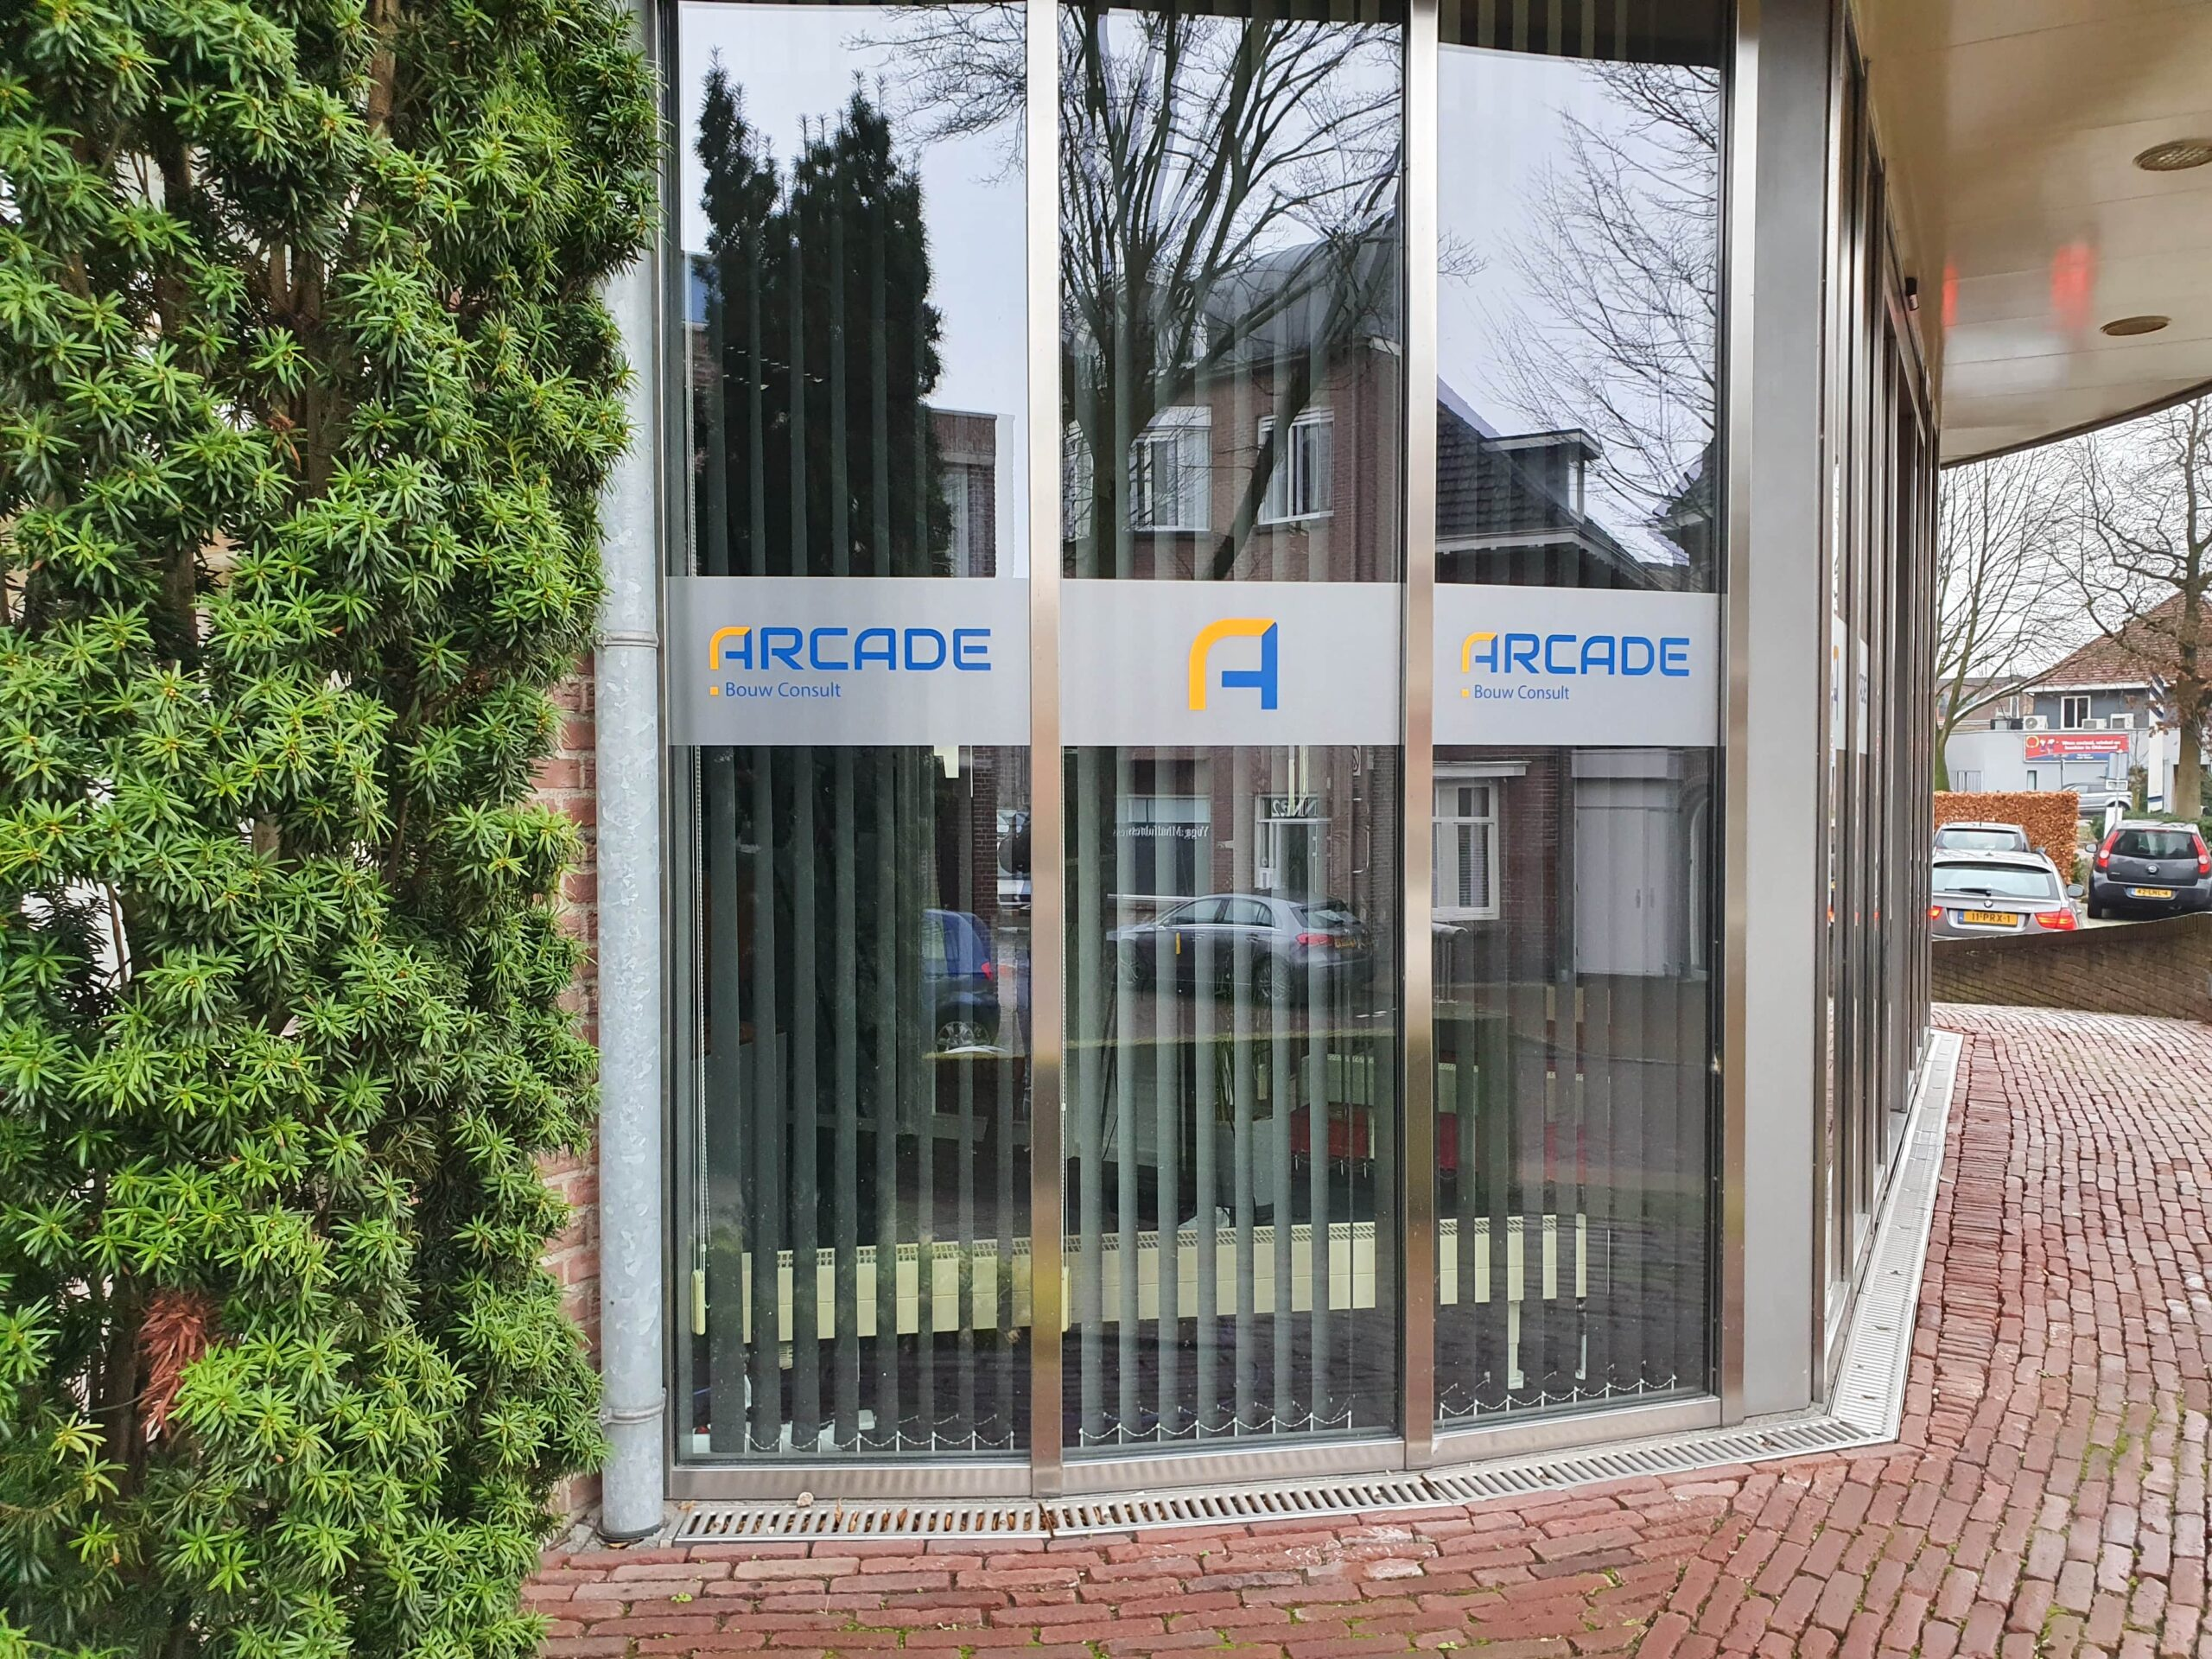 Over ons pand - Arcade Bouw Consult